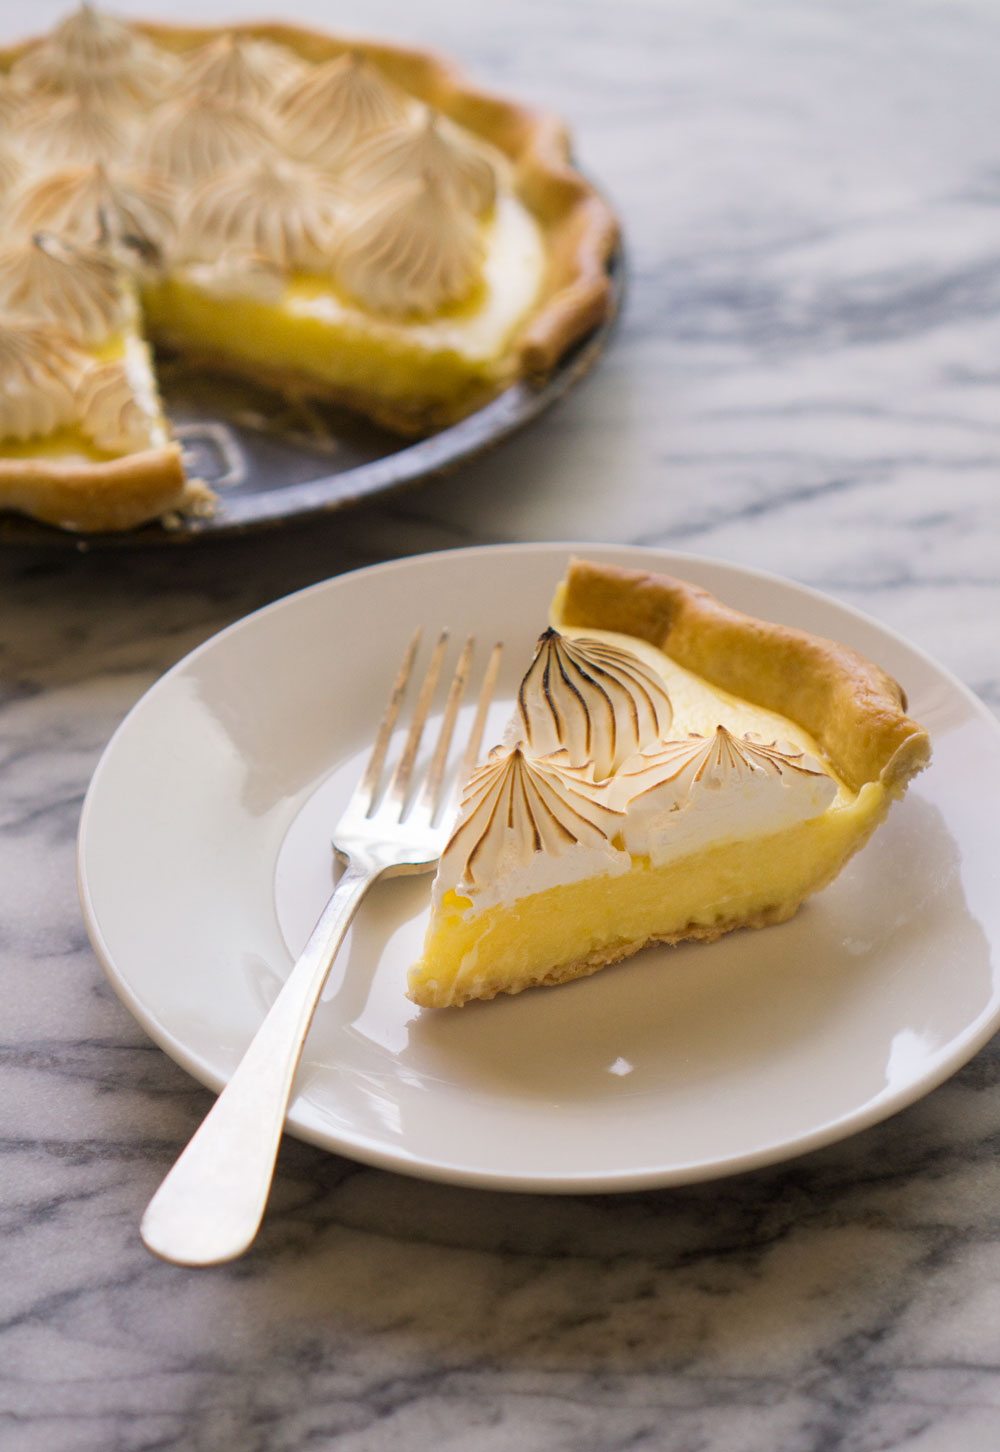 Lemon-Meringue-Pie_2.jpg